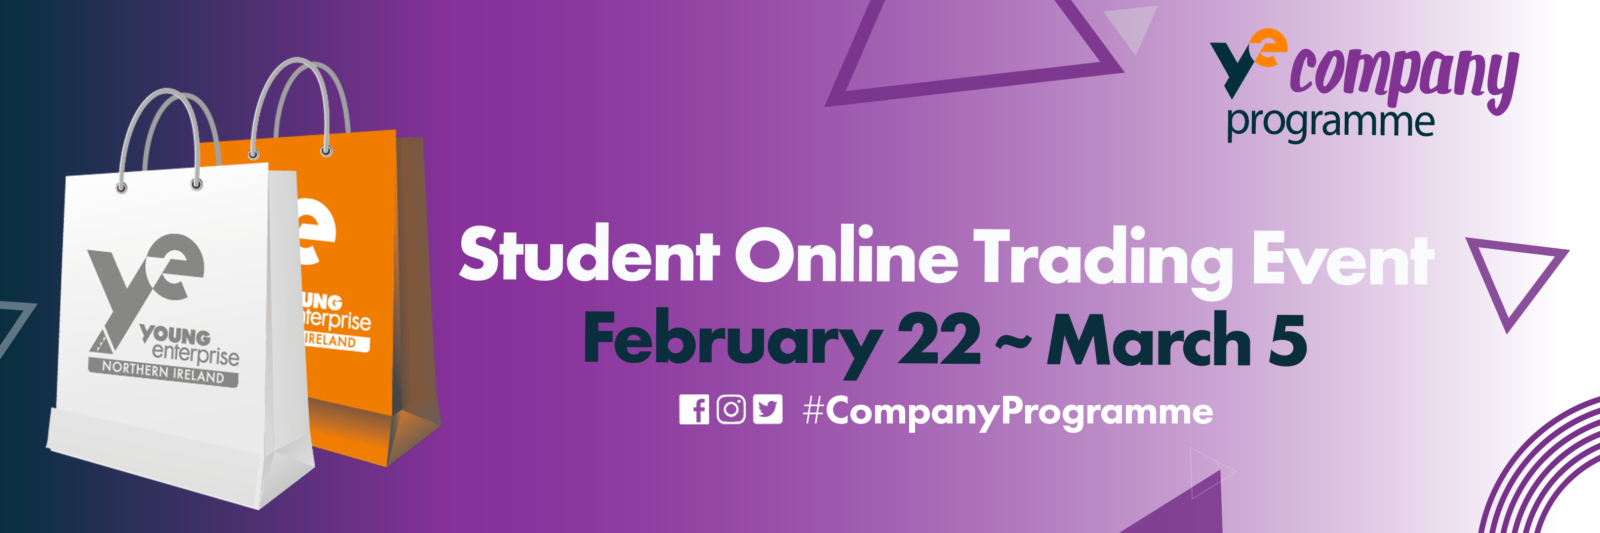 Student-Trade-Event-Web-Banner